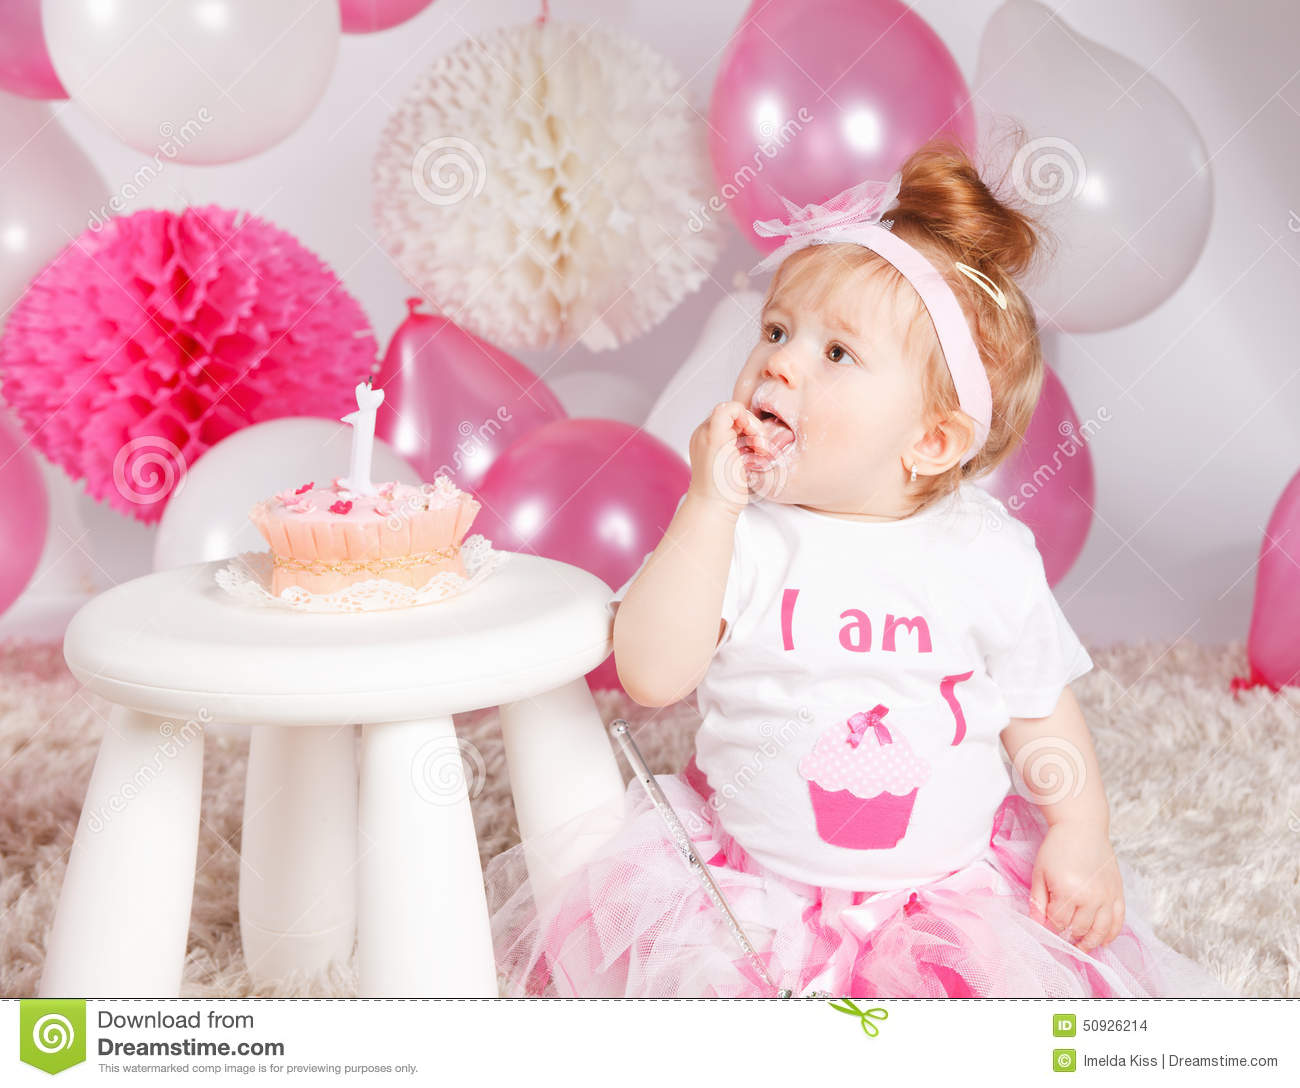 Cute Baby Eating The Birthday Cake